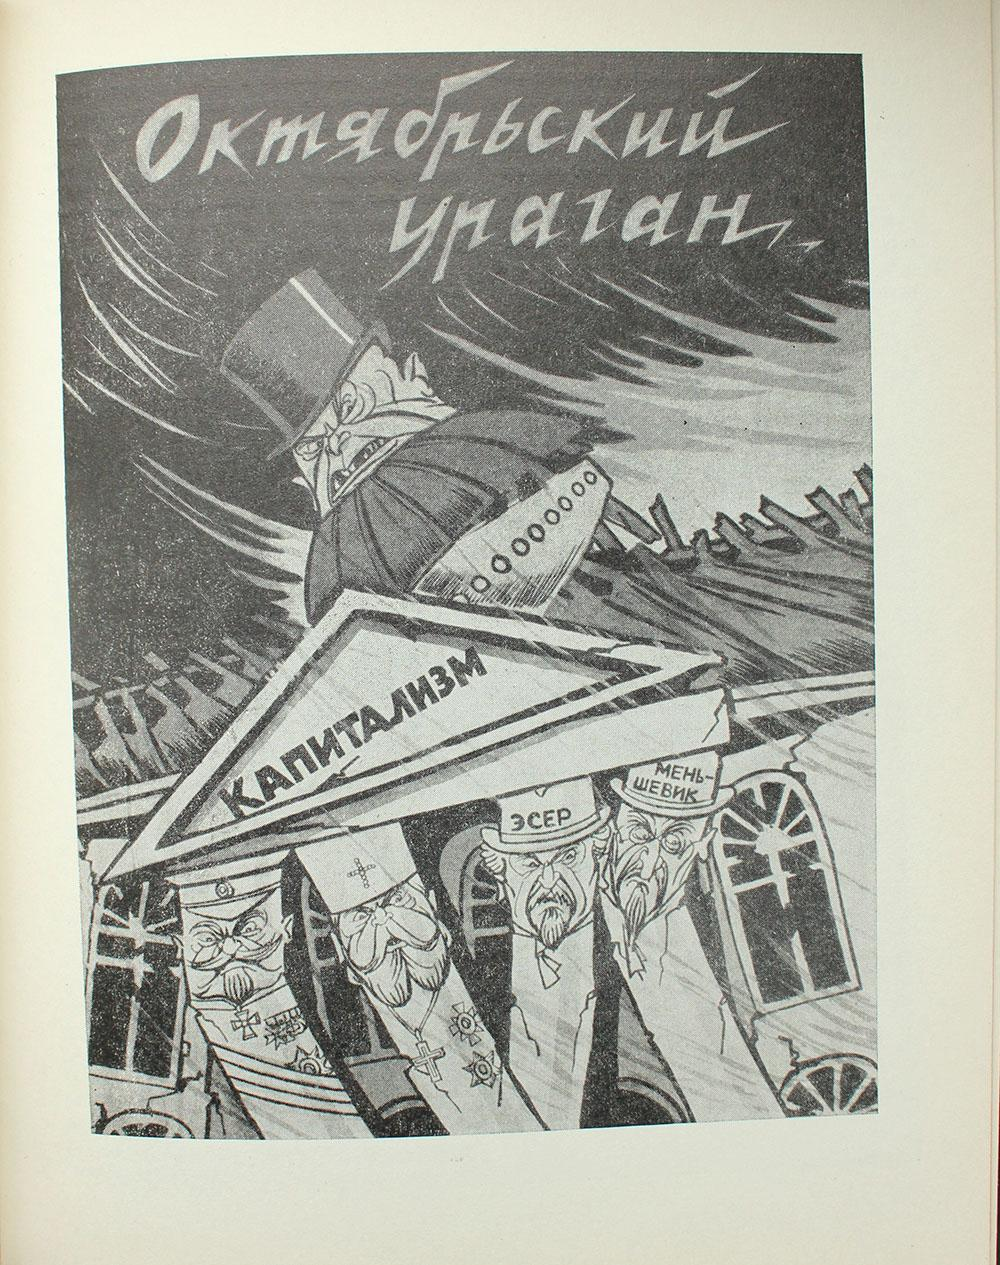 Soviet Satire Artists Desyat Ocherkov O Khudozhnikakh Satirikakh